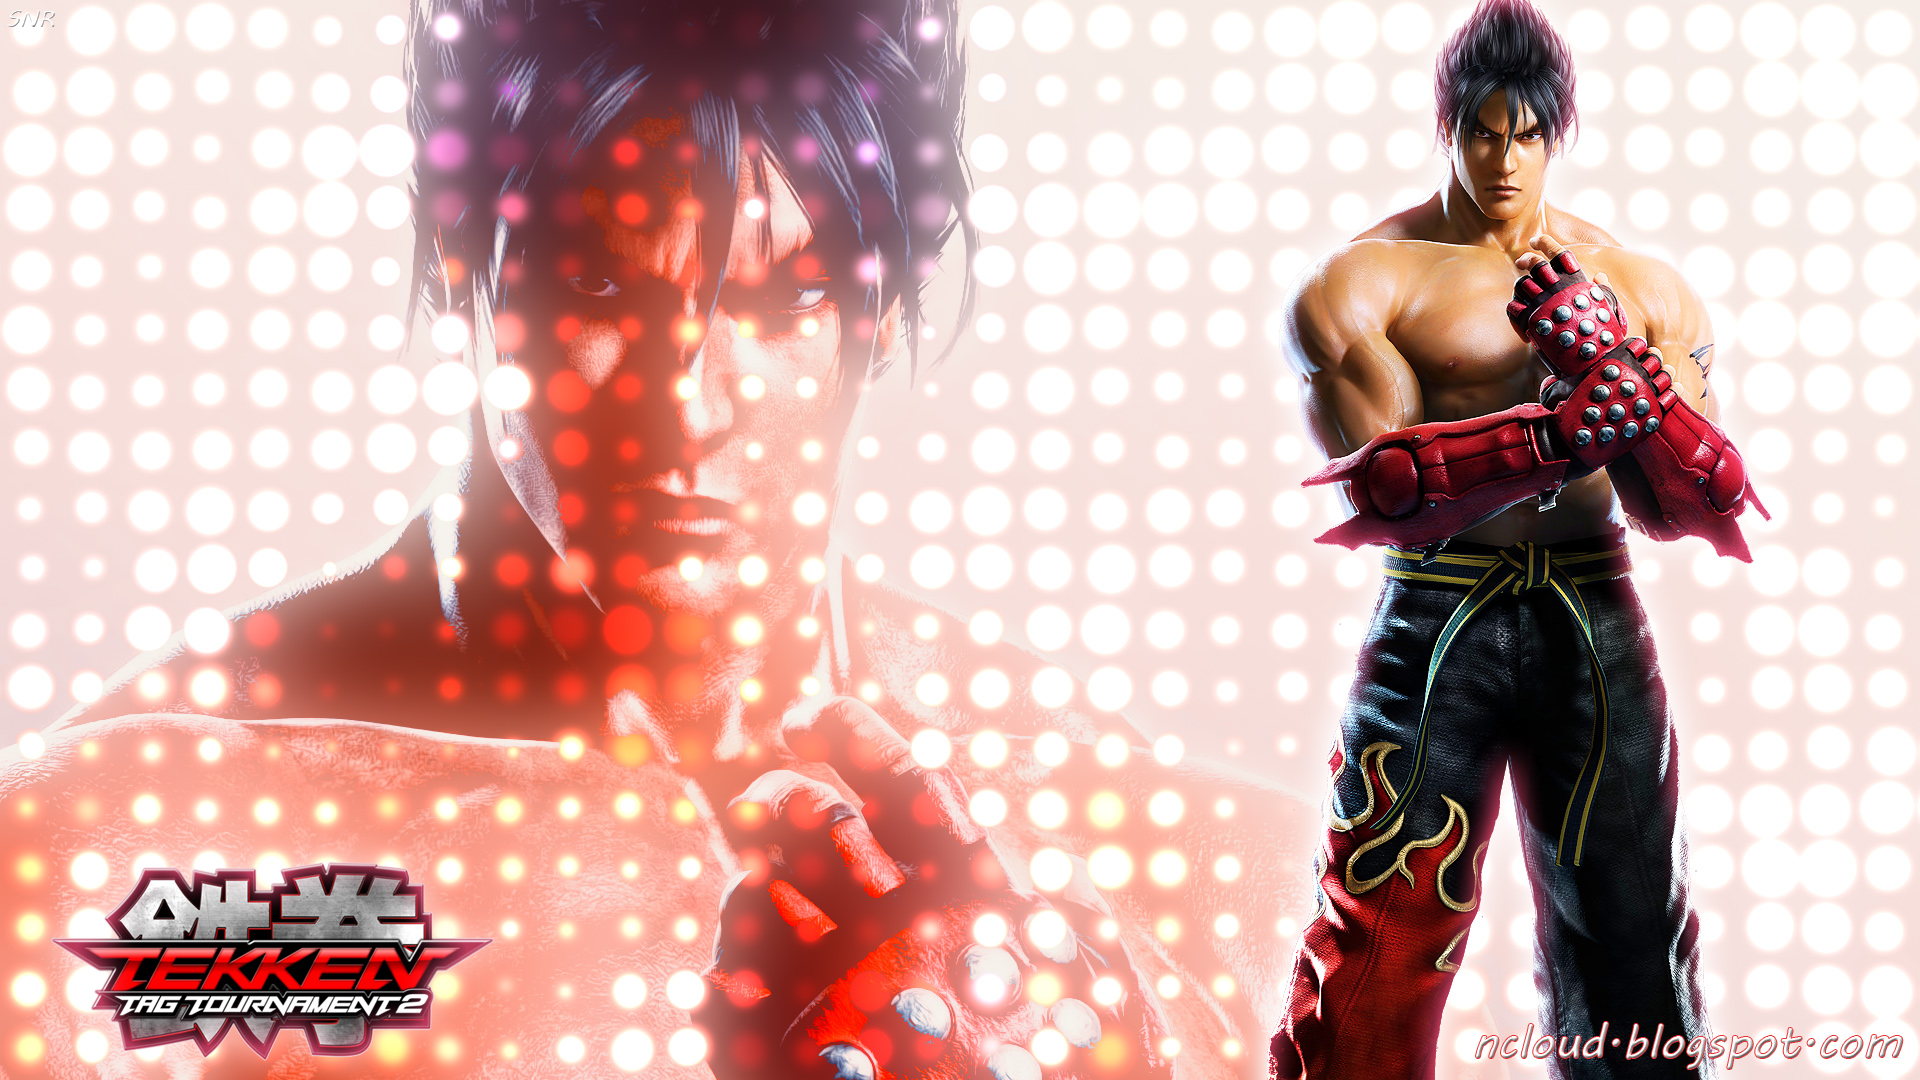 Games Movies Music Anime My Tekken Tag Tournament 2 Jin Wallpaper 1920x1080